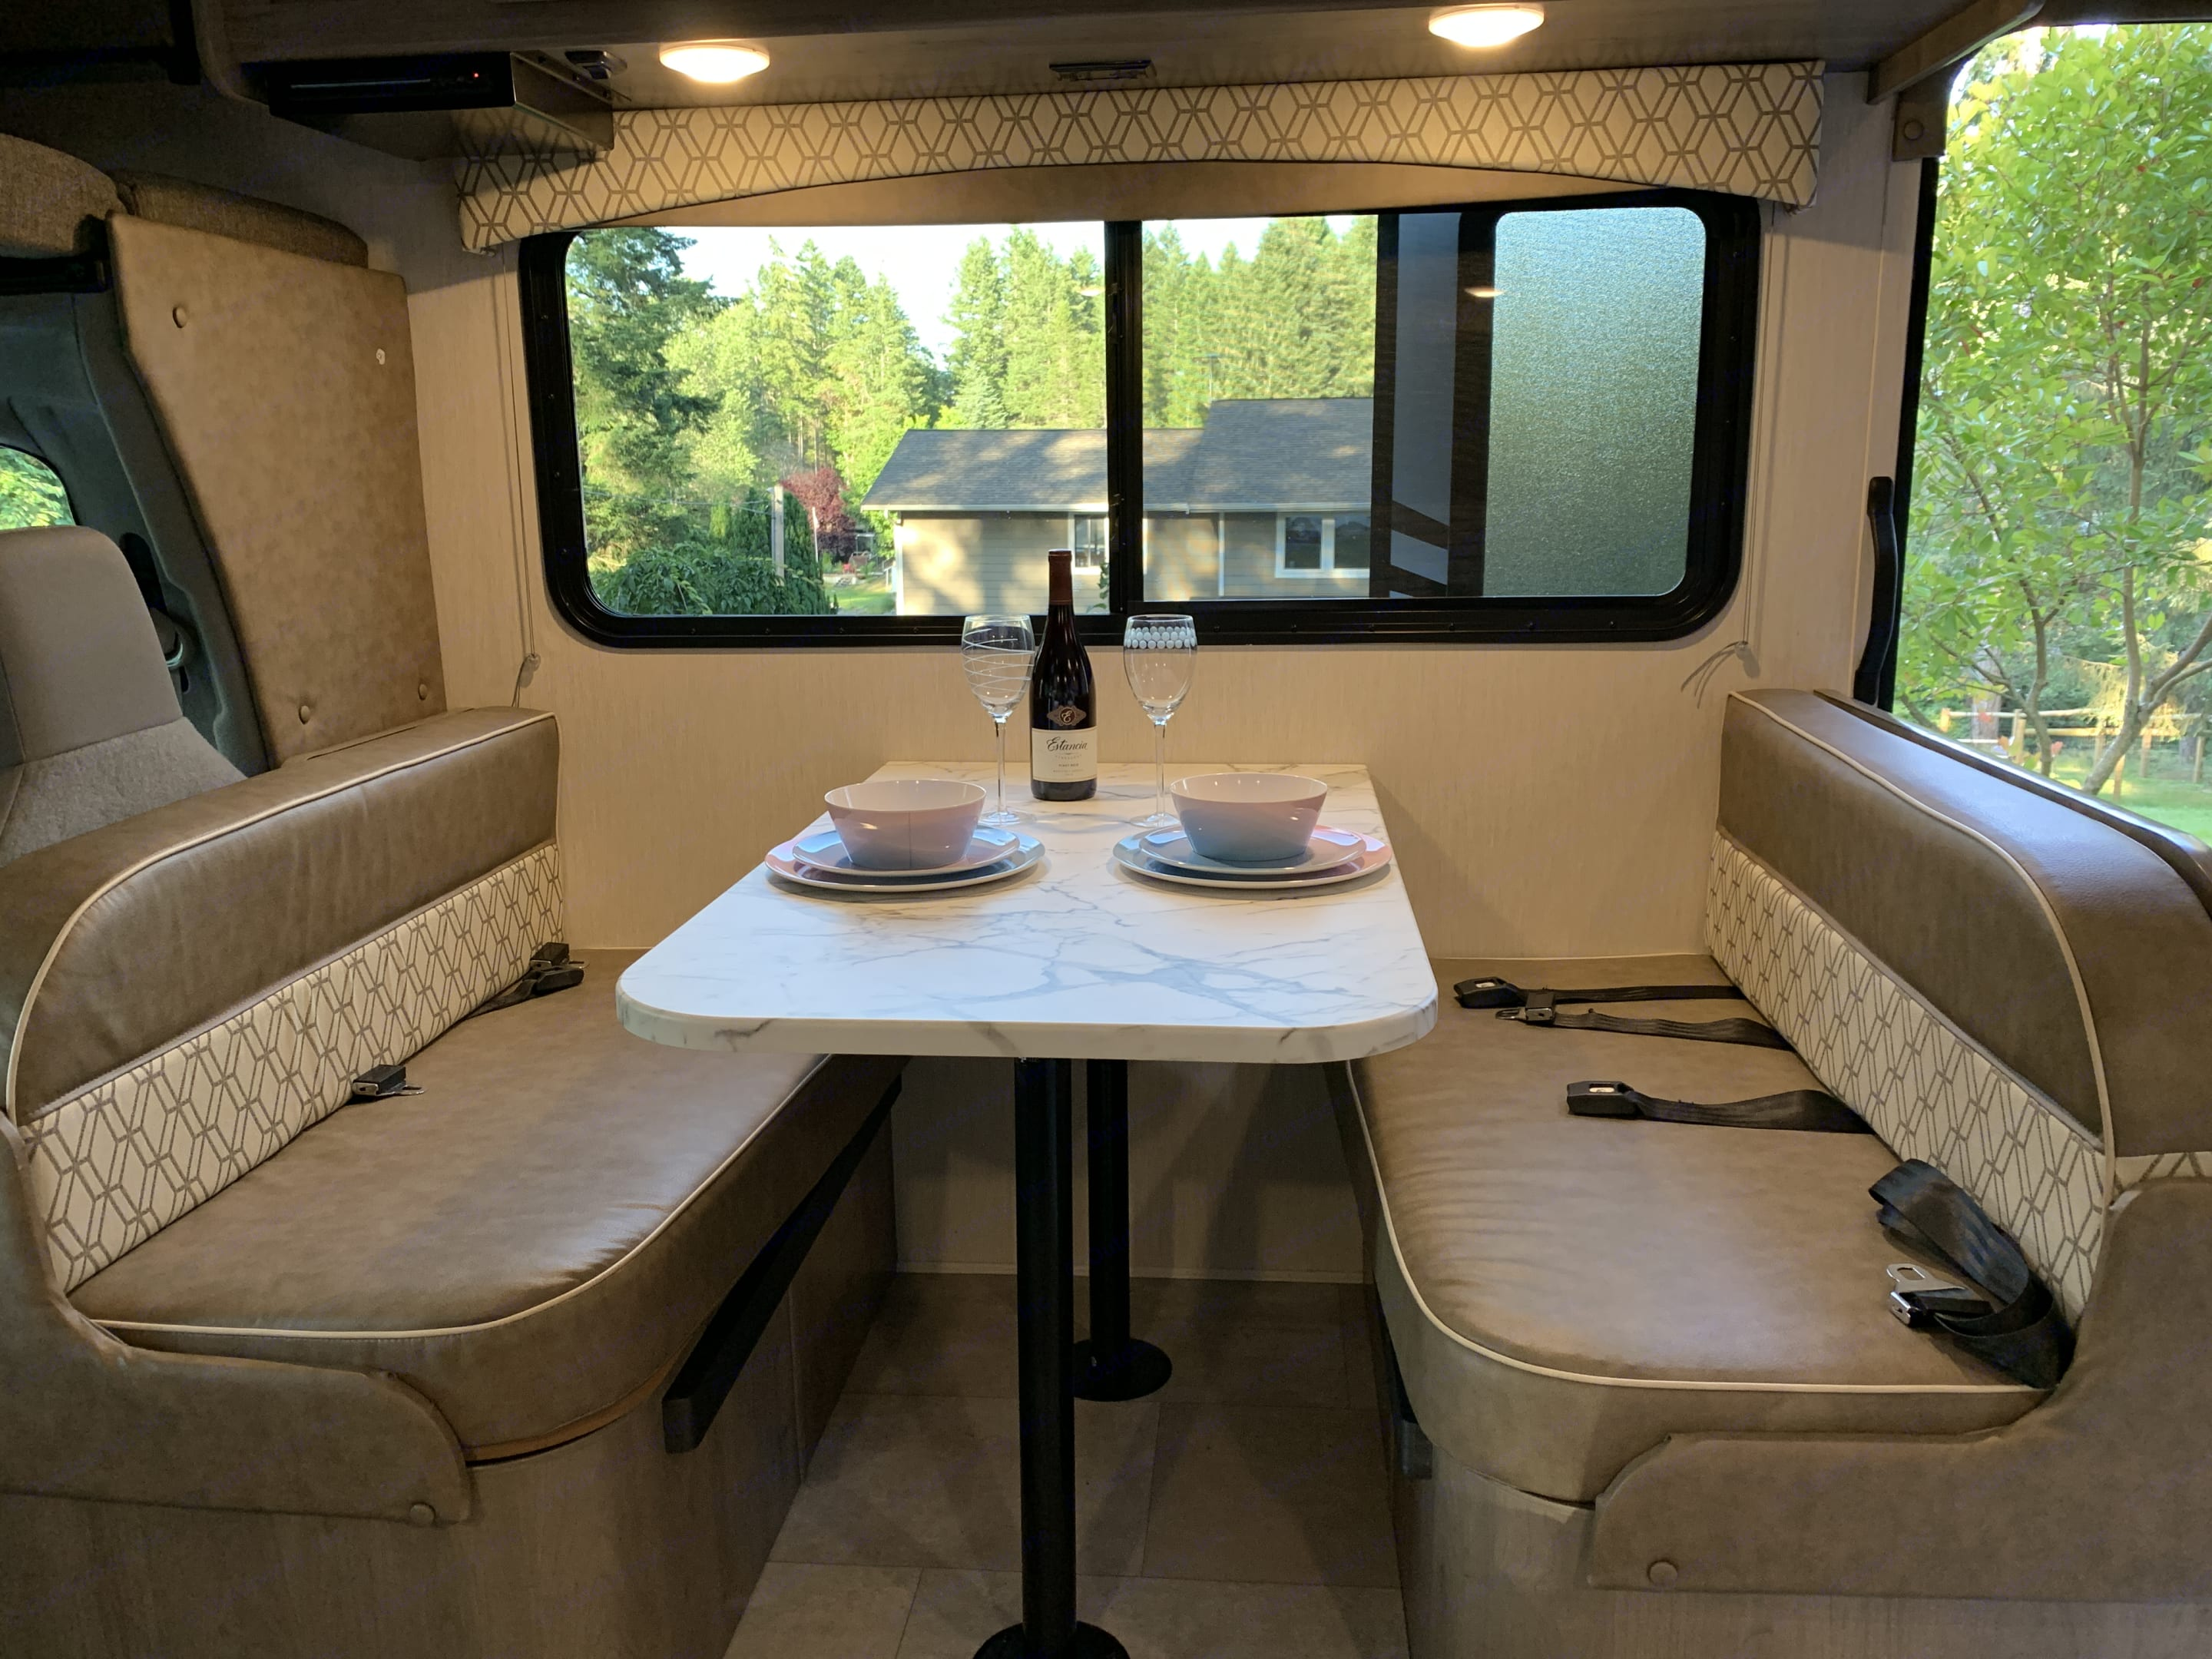 We love sitting around the dinner table and discussing all of our adventures! When in motion this is a great place to buckle up and play travel games.. Coachmen Freelander 2021